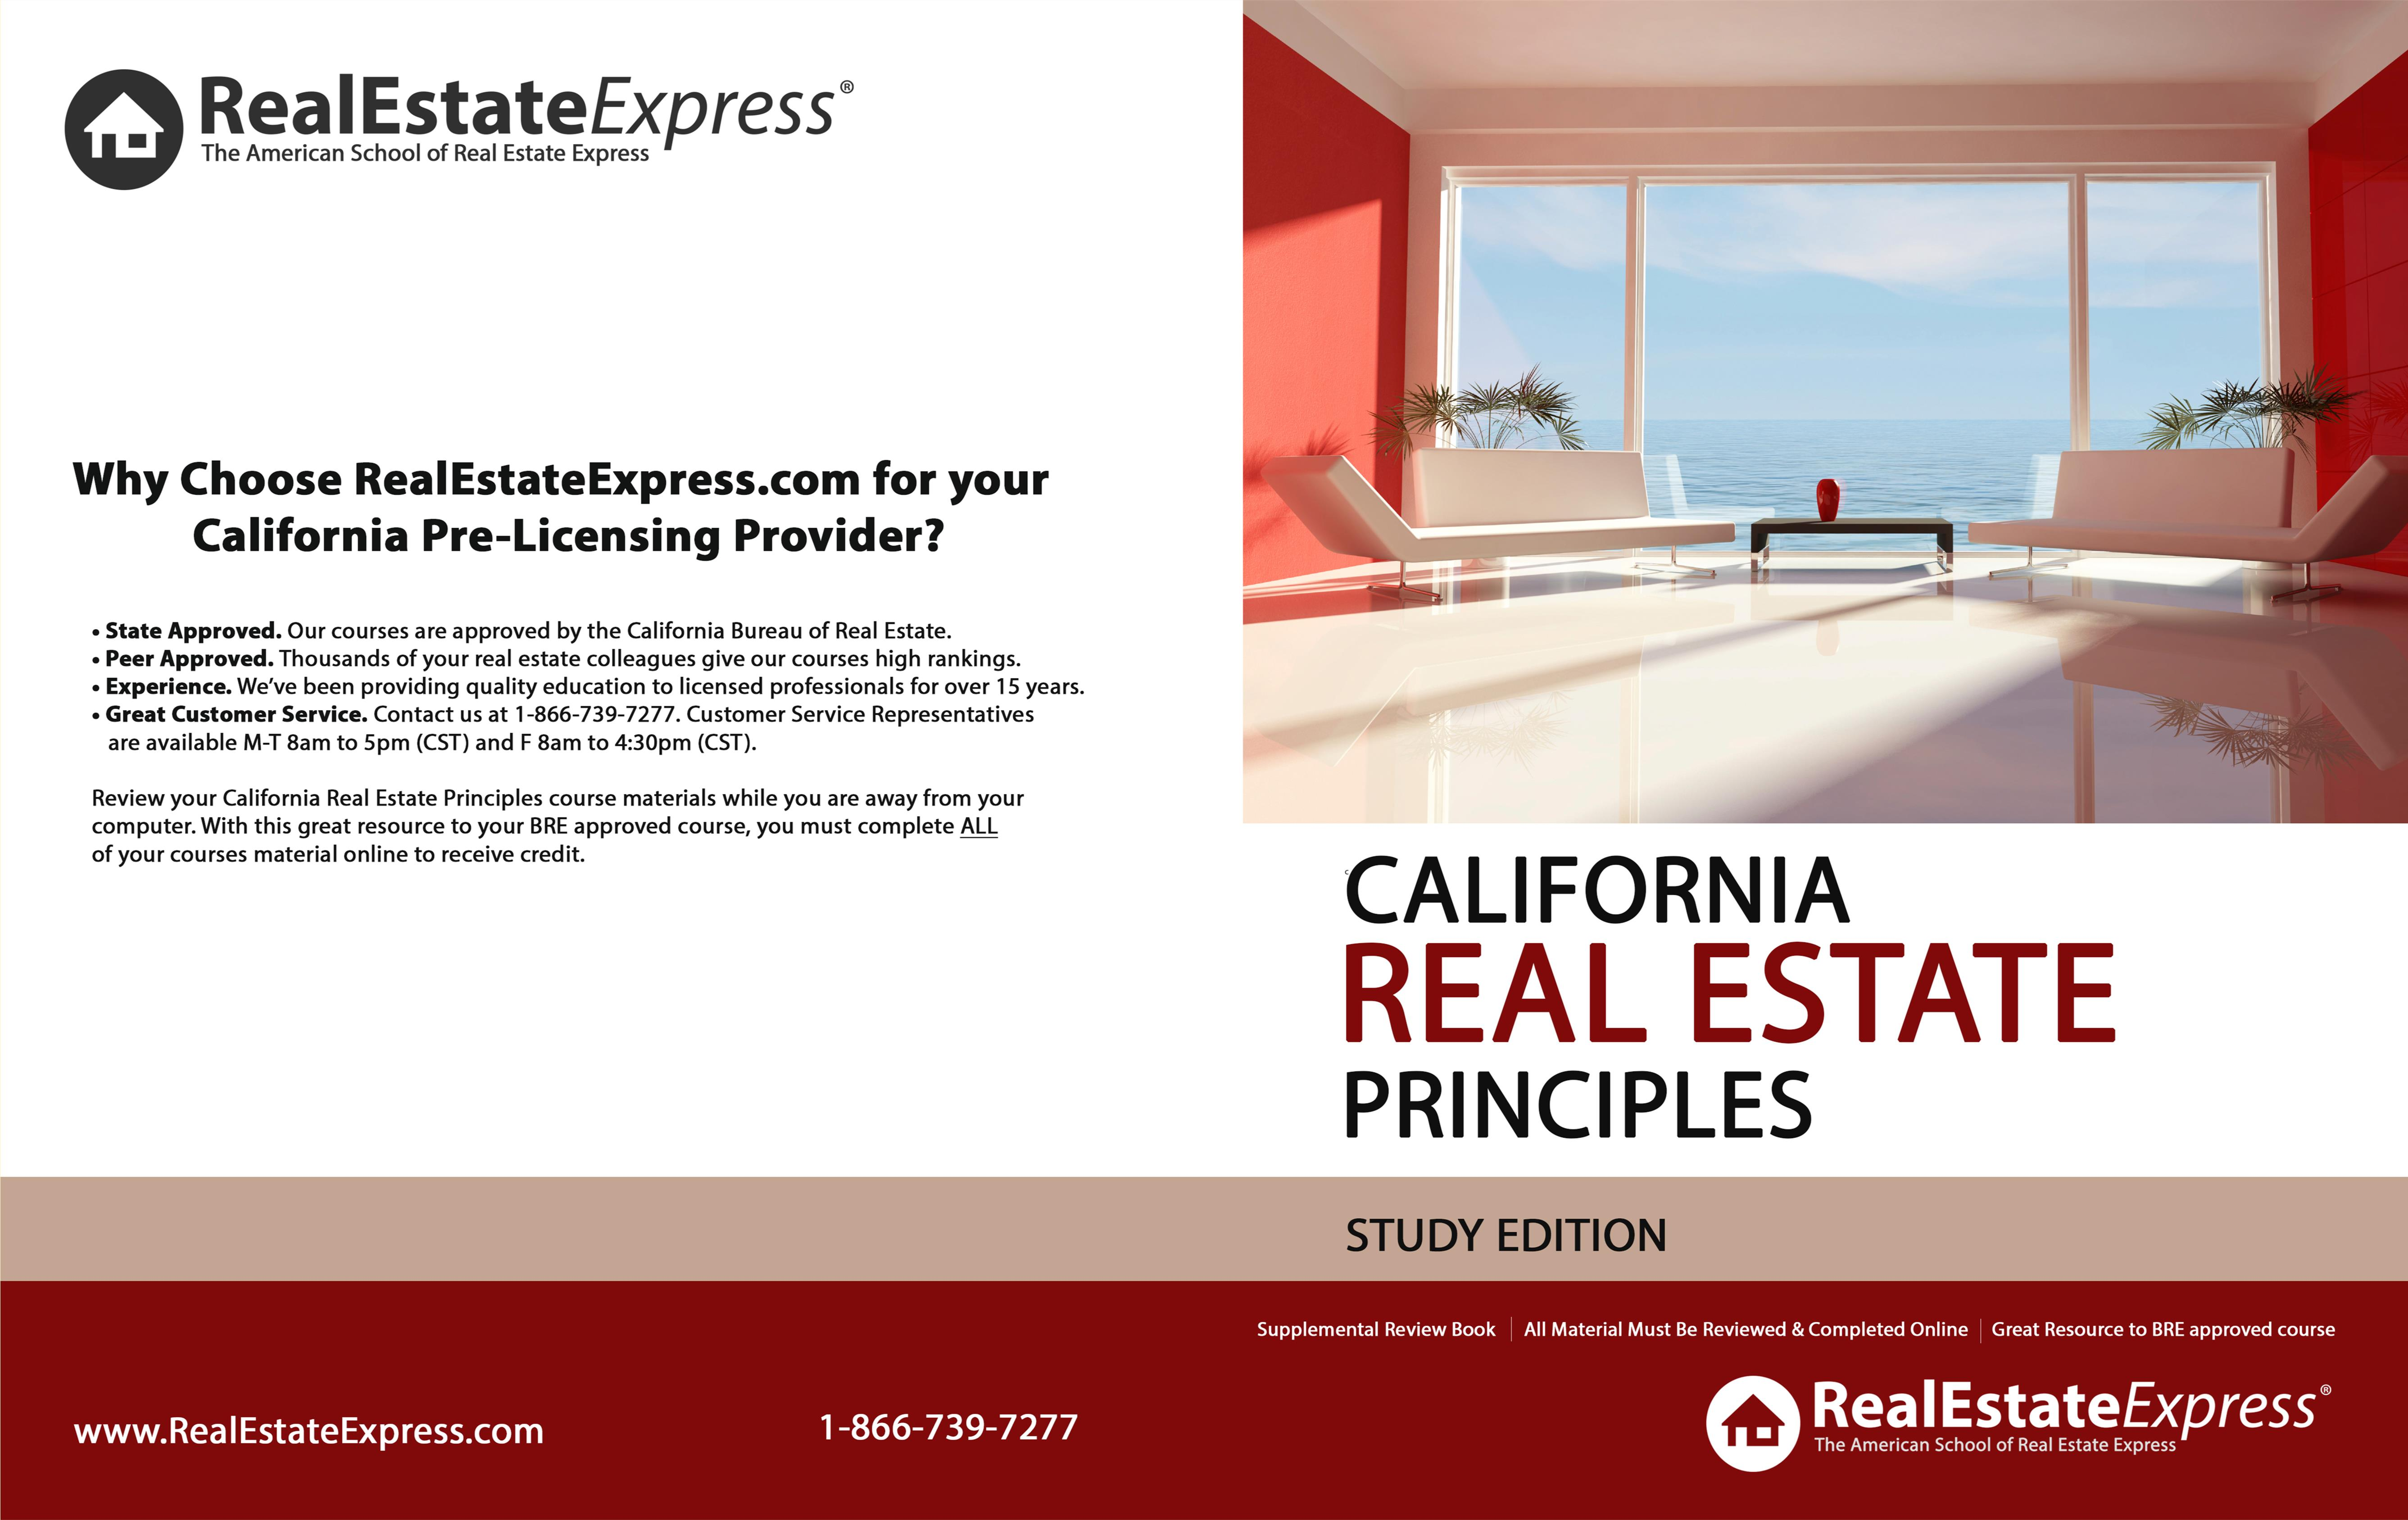 California Real Estate Principles (Study Edition) cover image